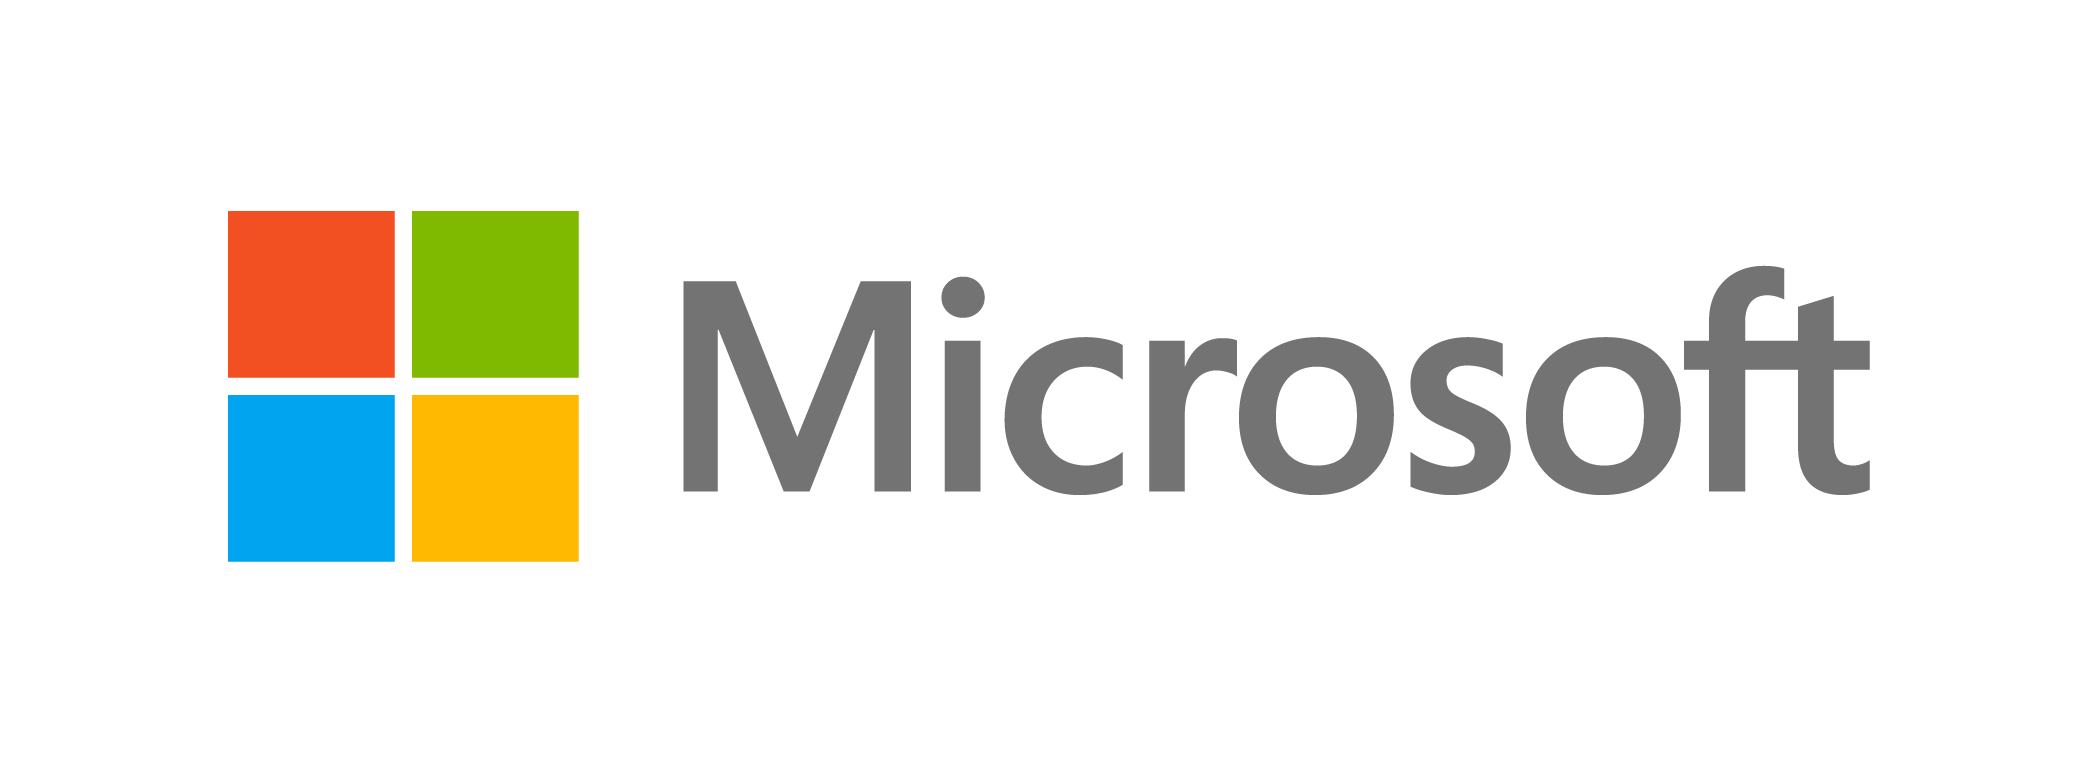 Microsoft Expands Youth Technology Programs